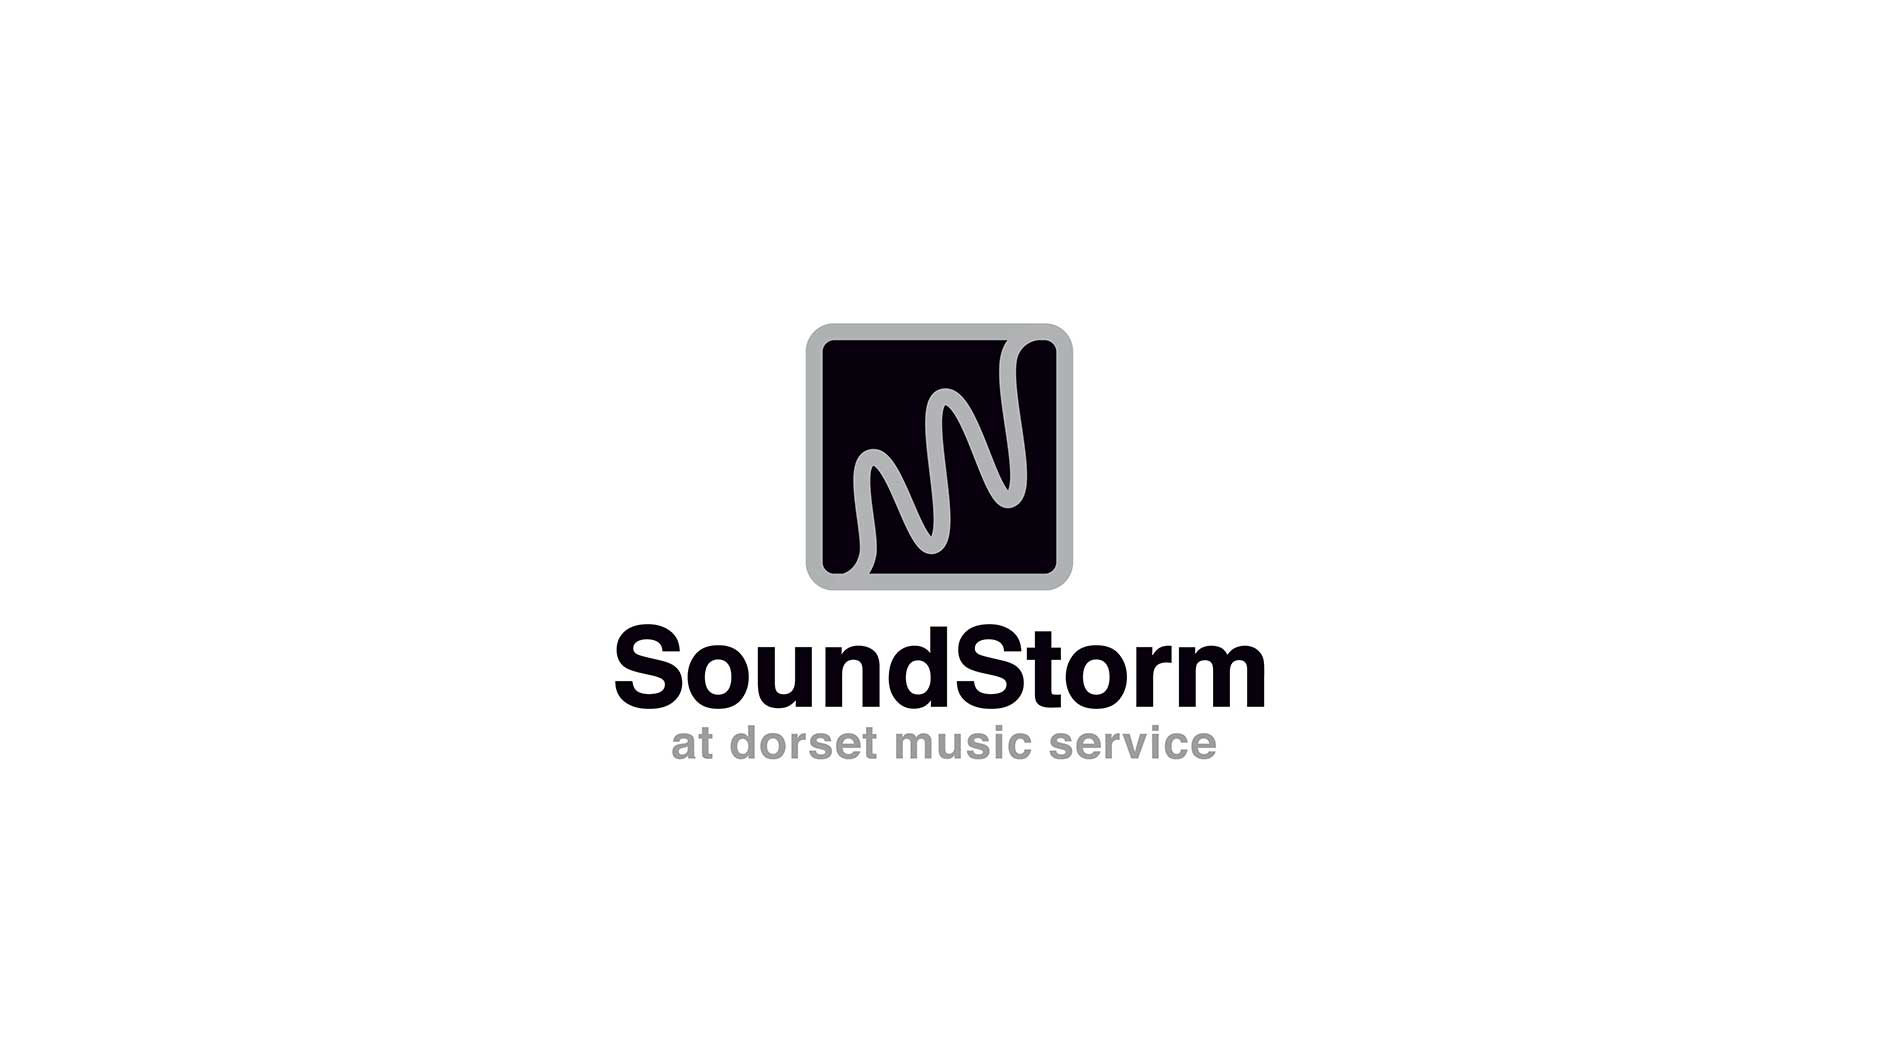 Soundstorm black and white logo